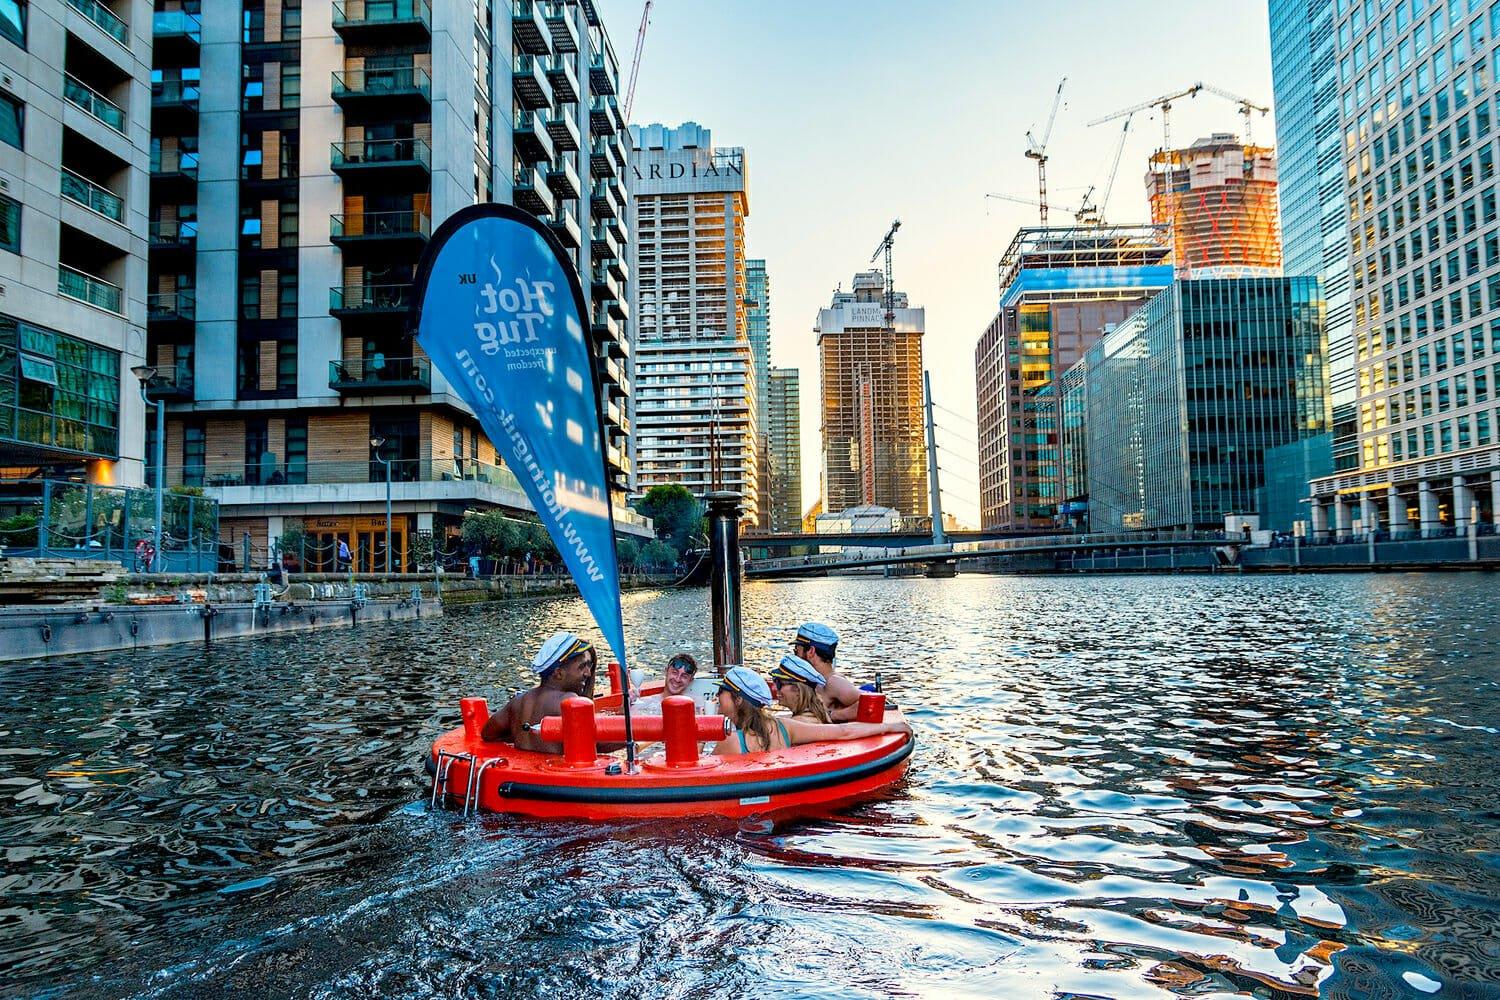 hot tub boats london outdoor things to do